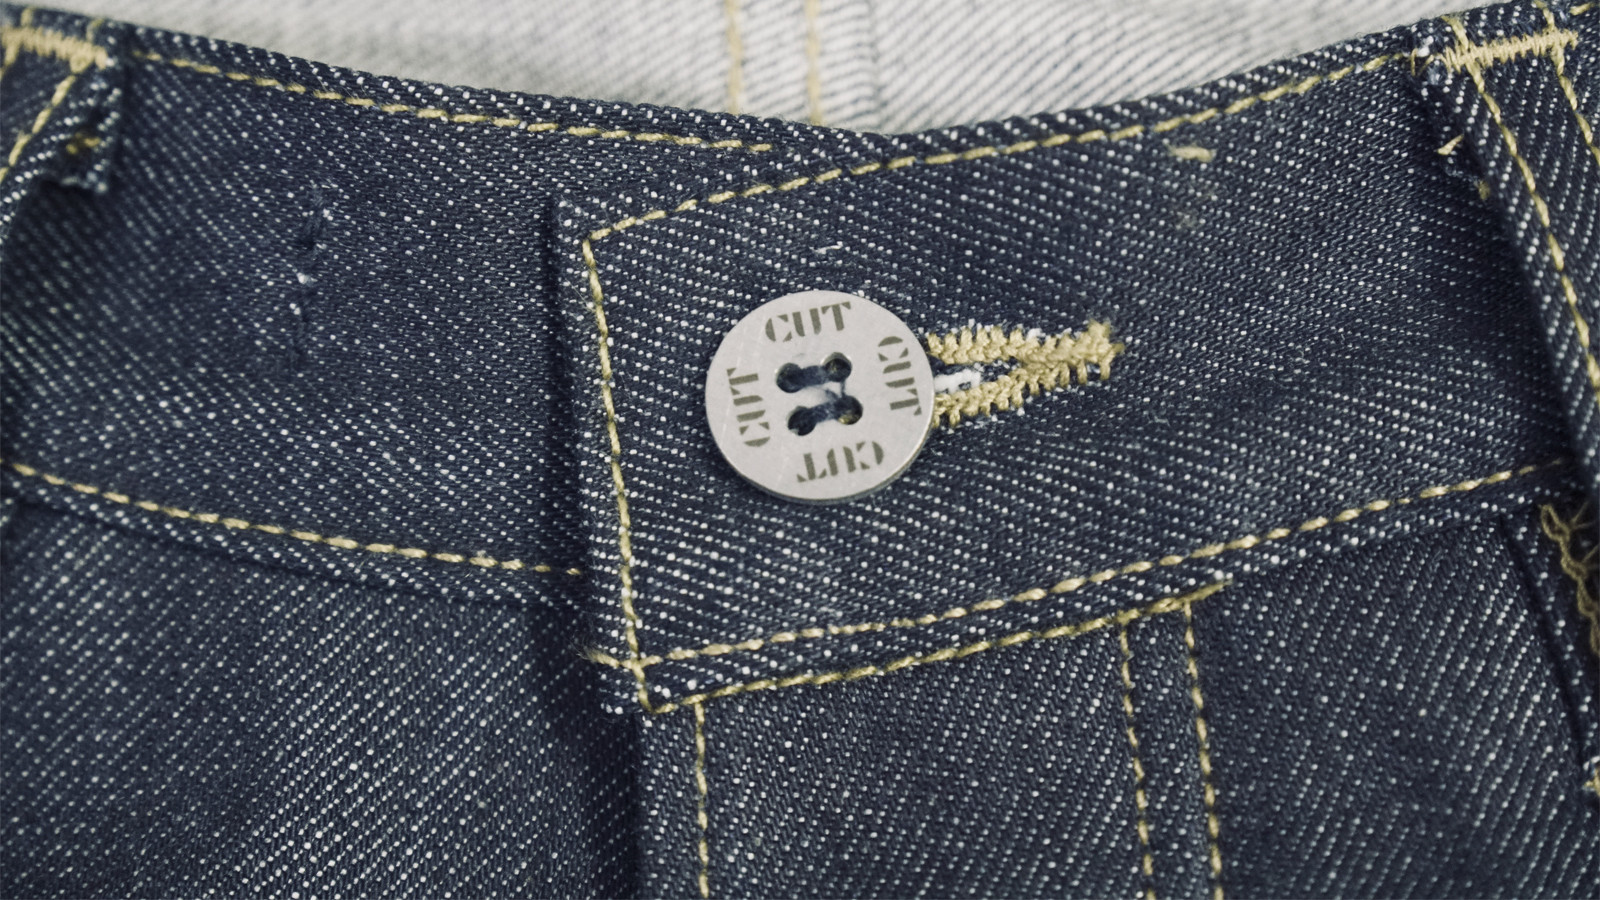 Detail of CUT Jeans. Photo by David